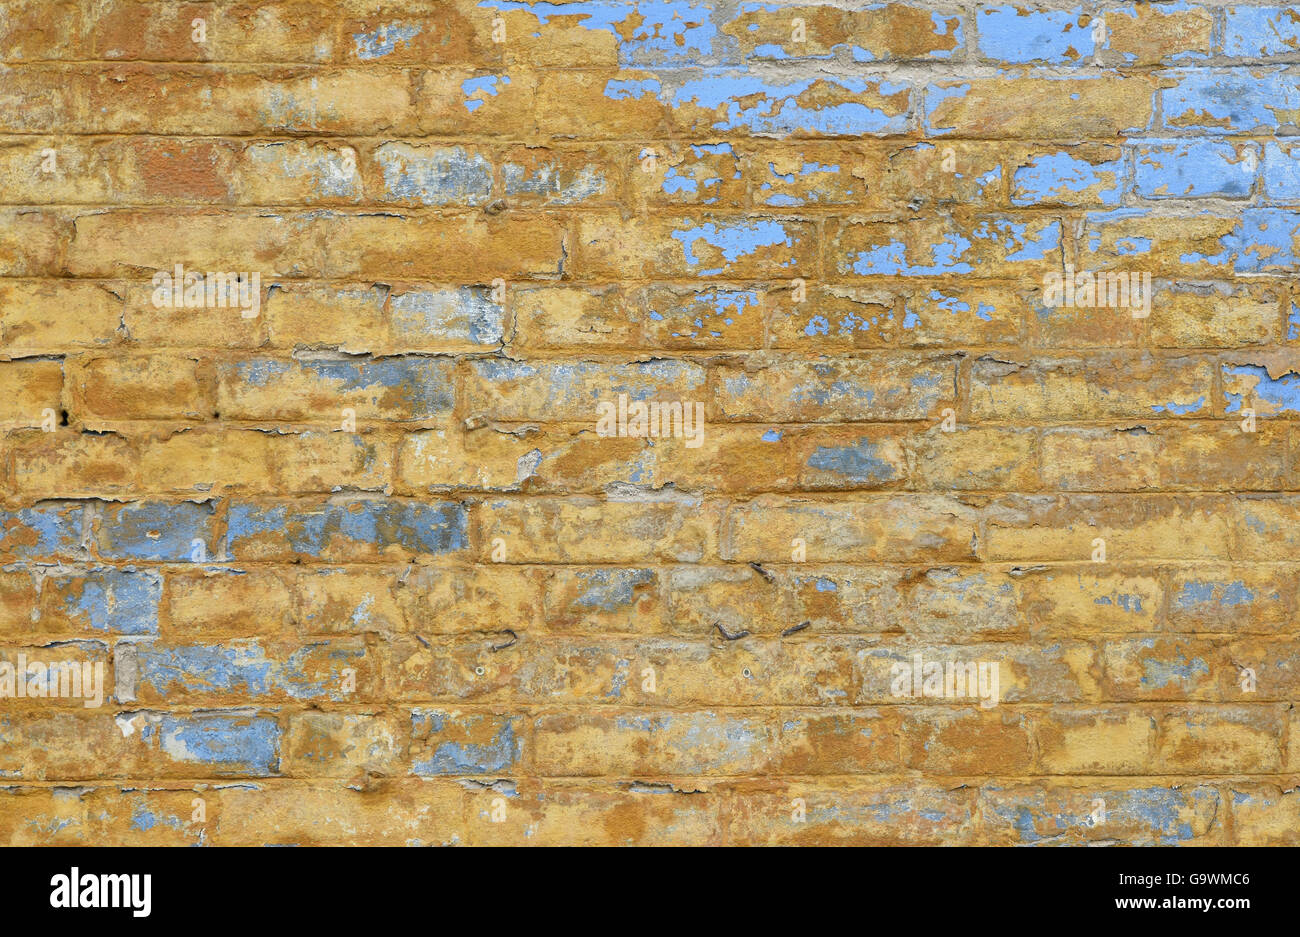 Modern Decorative Stones For Walls Philippines Vignette - Wall Art ...